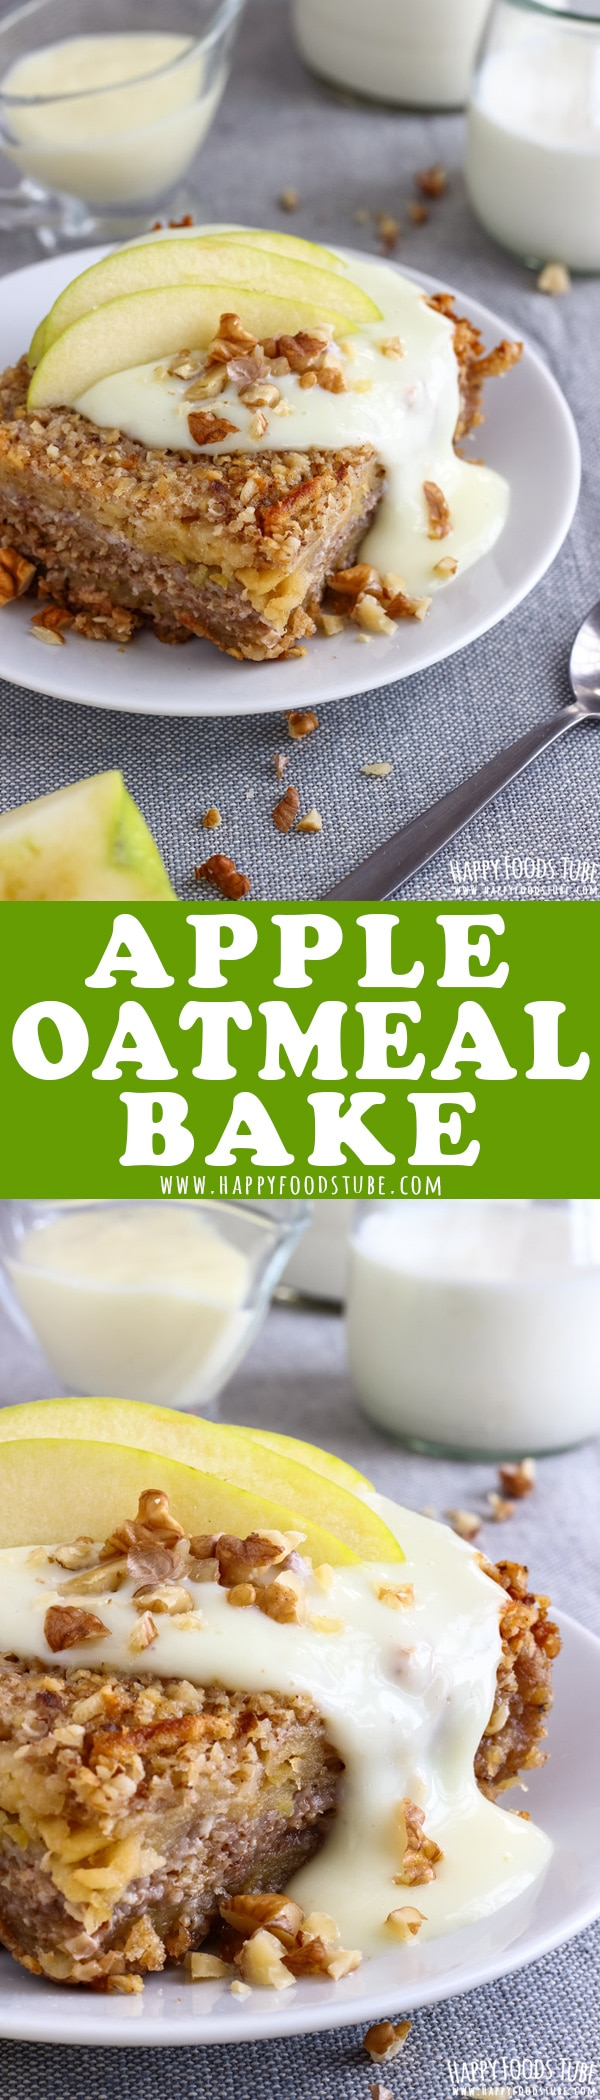 The best apple oatmeal bake you will ever taste! Crispy on the outside, moist on the inside, sweet and addictive. No eggs, no flour and gluten free recipe. Homemade apple oatmeal bake from scratch. #apple #oatmeal #breakfast #bake #recipe